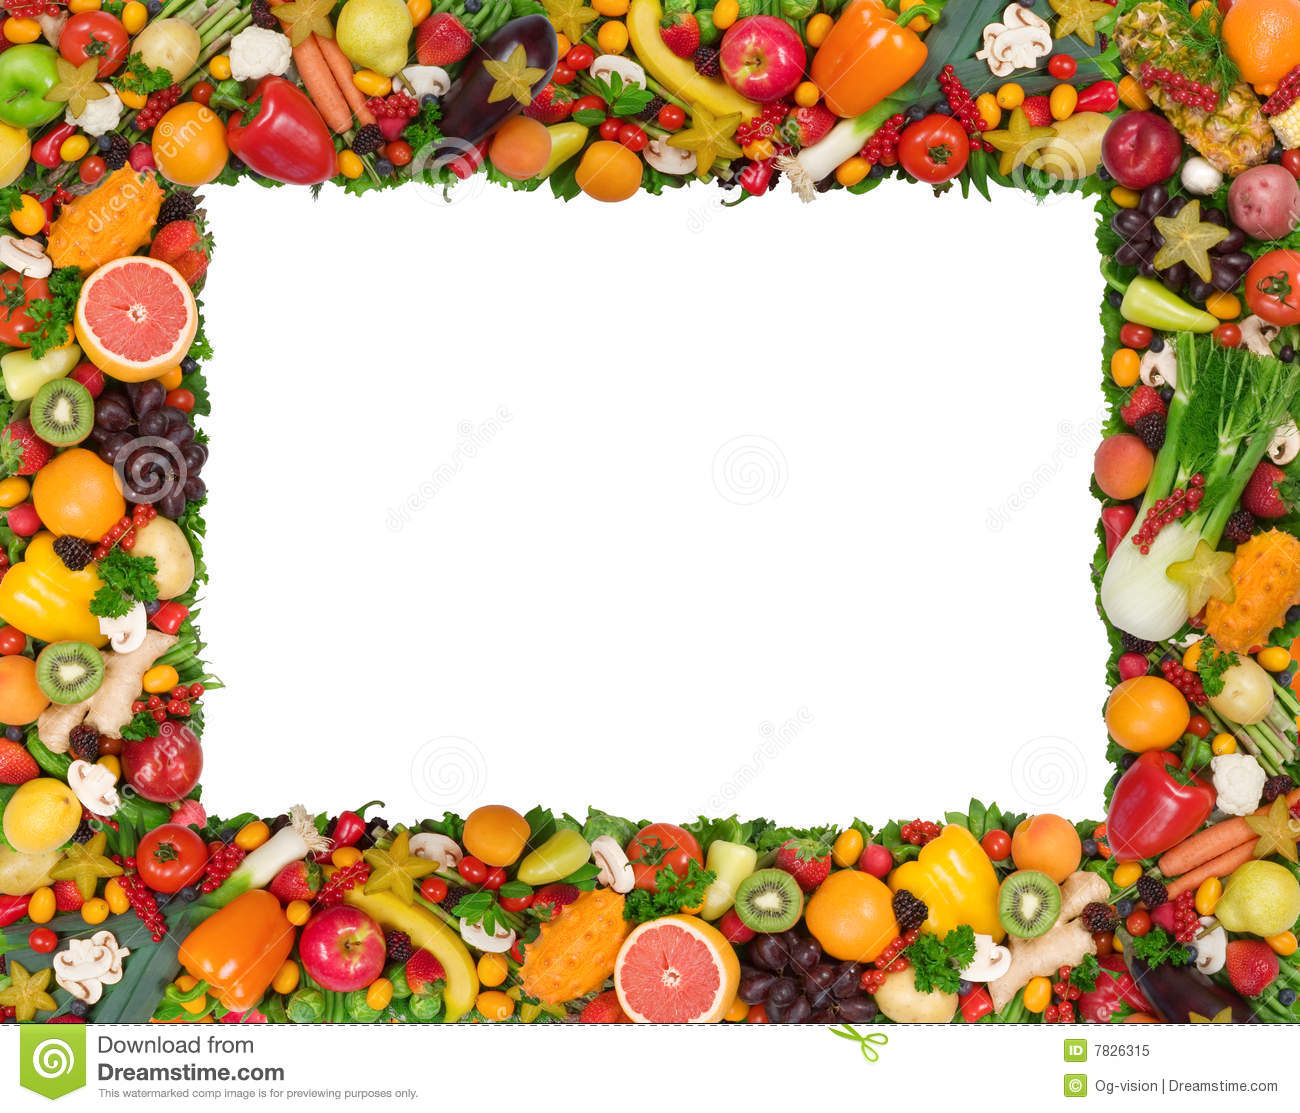 Fruits And Vegetables Background All HD Wallpapers 1300x1113